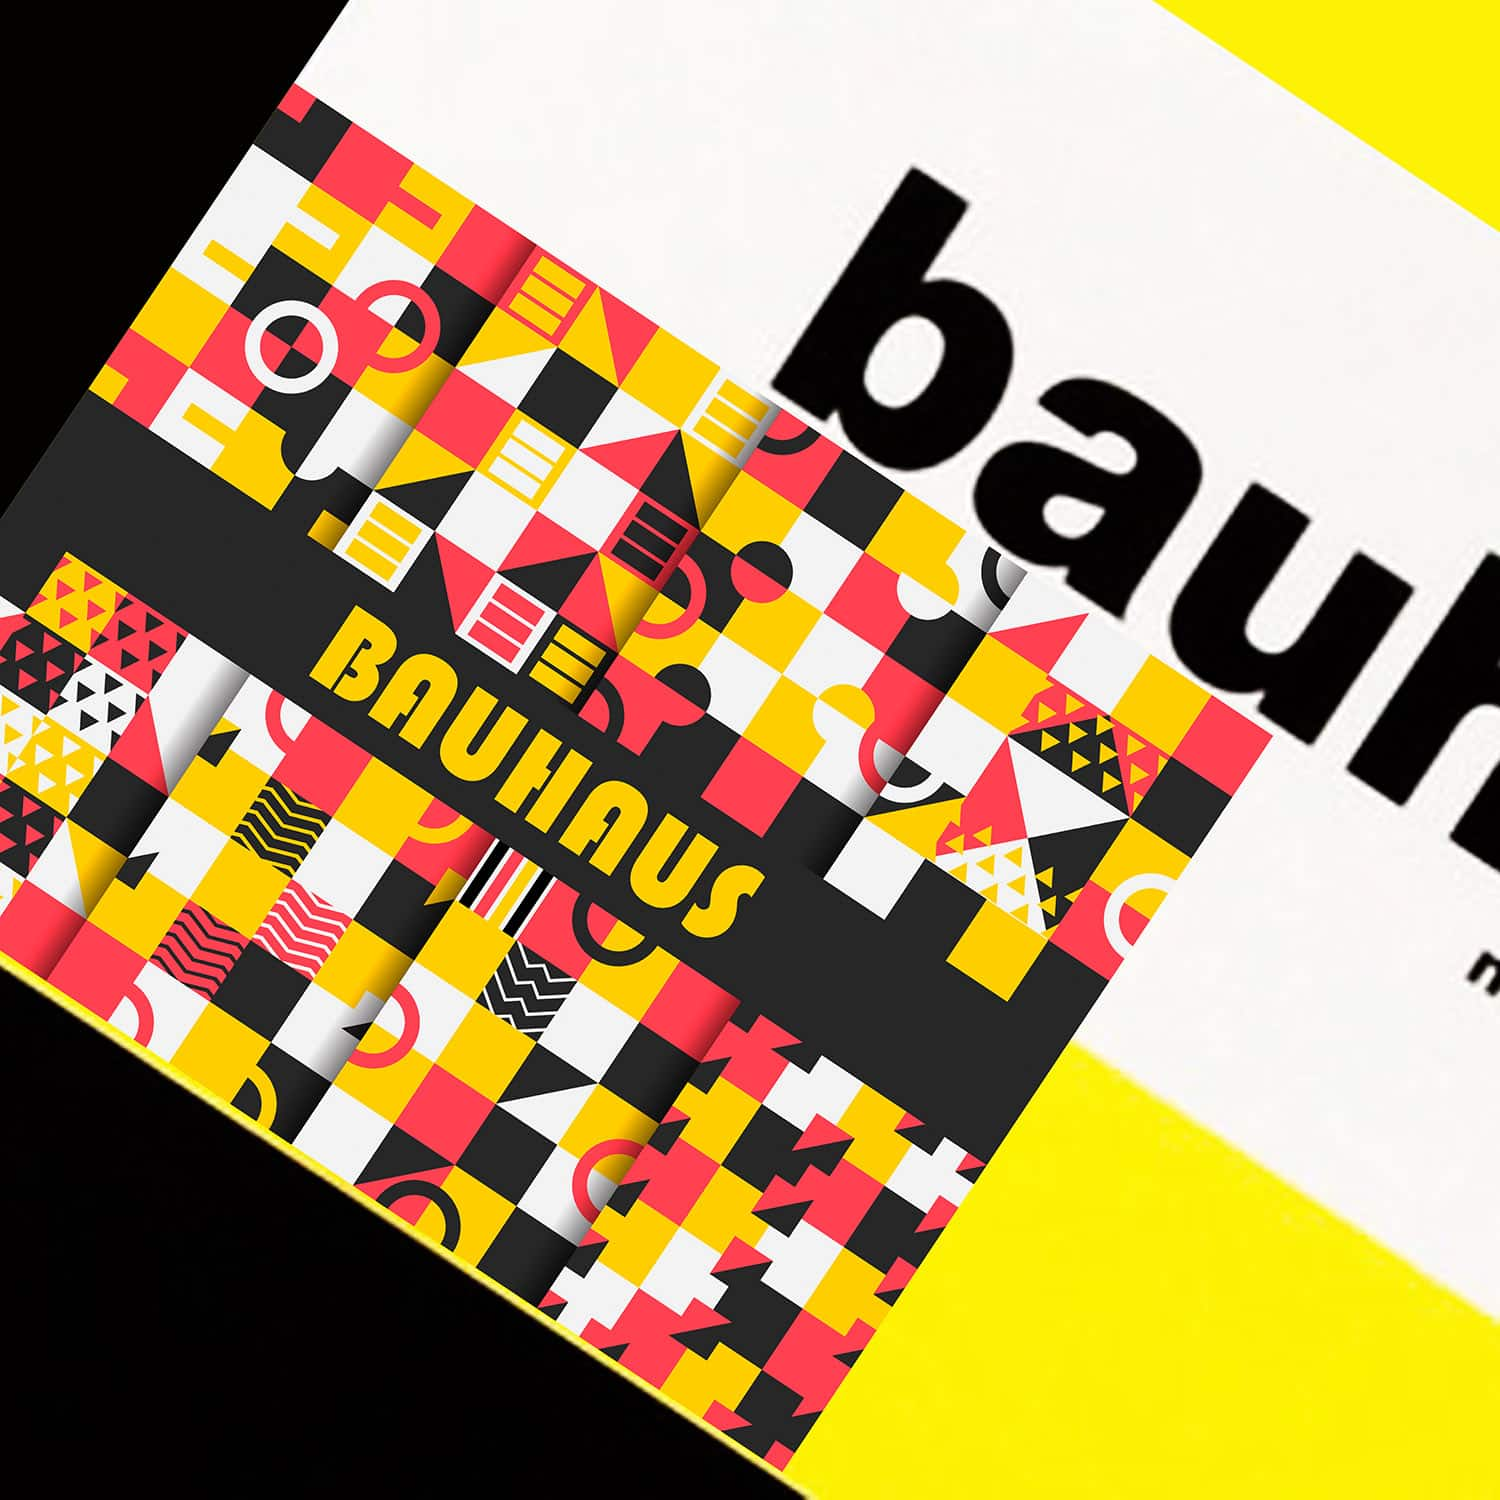 Bauhaus Movement yellow logo